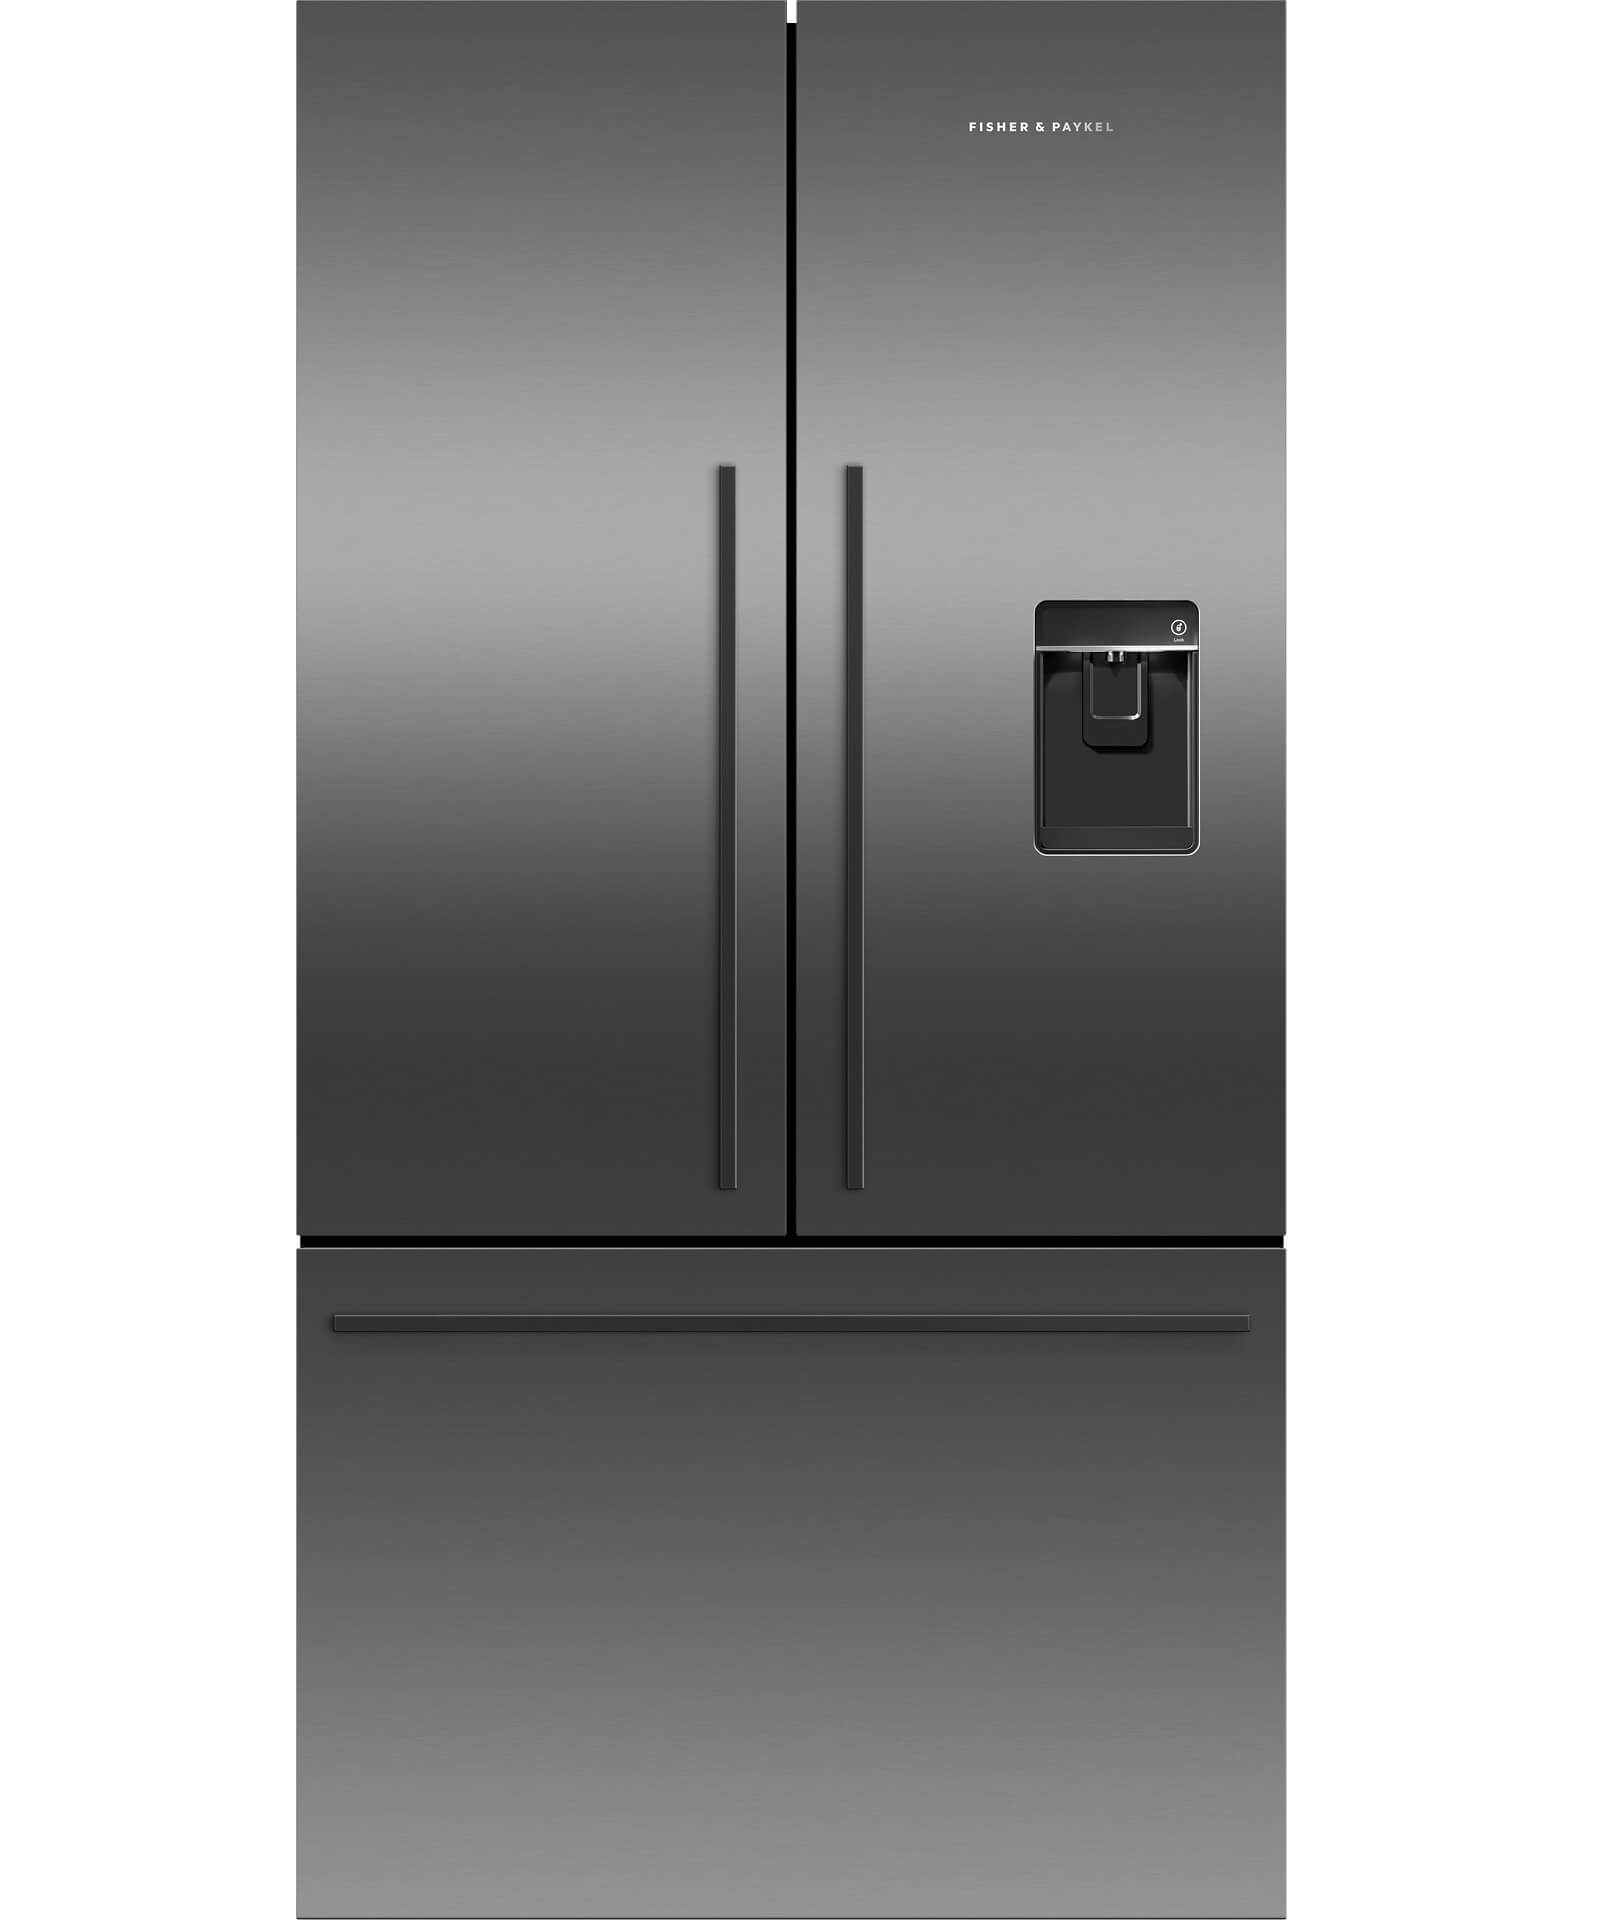 Reillys Home Appliances Fisher Paykel 610 L Black Steel French